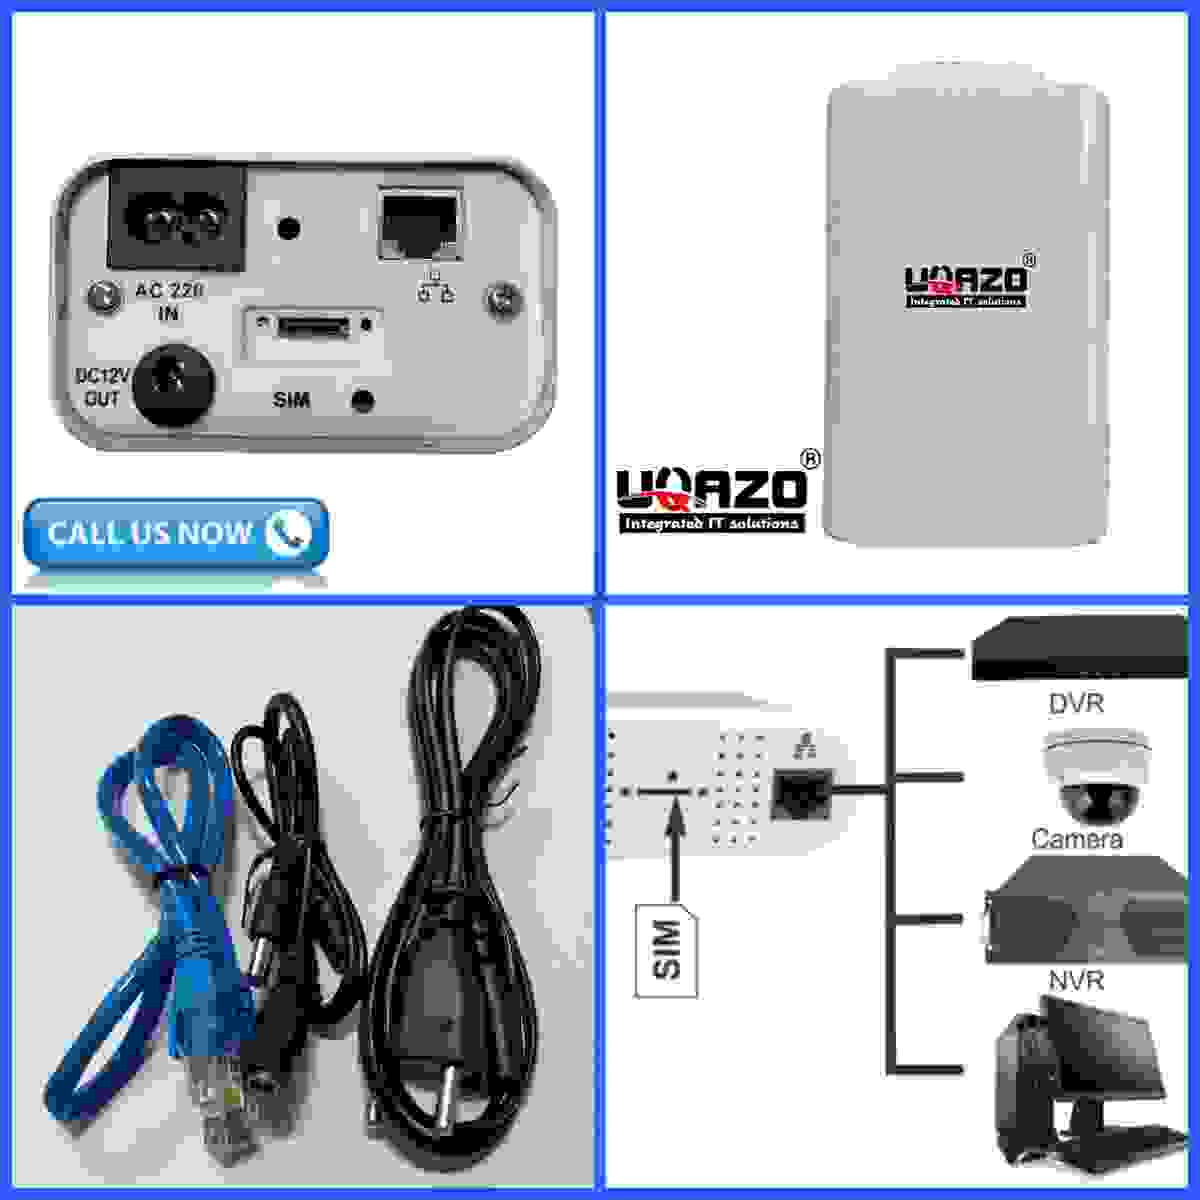 UQAZO 4G ROUTER+WIFI+LAN+WITH POWER+ WATERPROOF All GSM Sim Supported Special for CCTV Modem